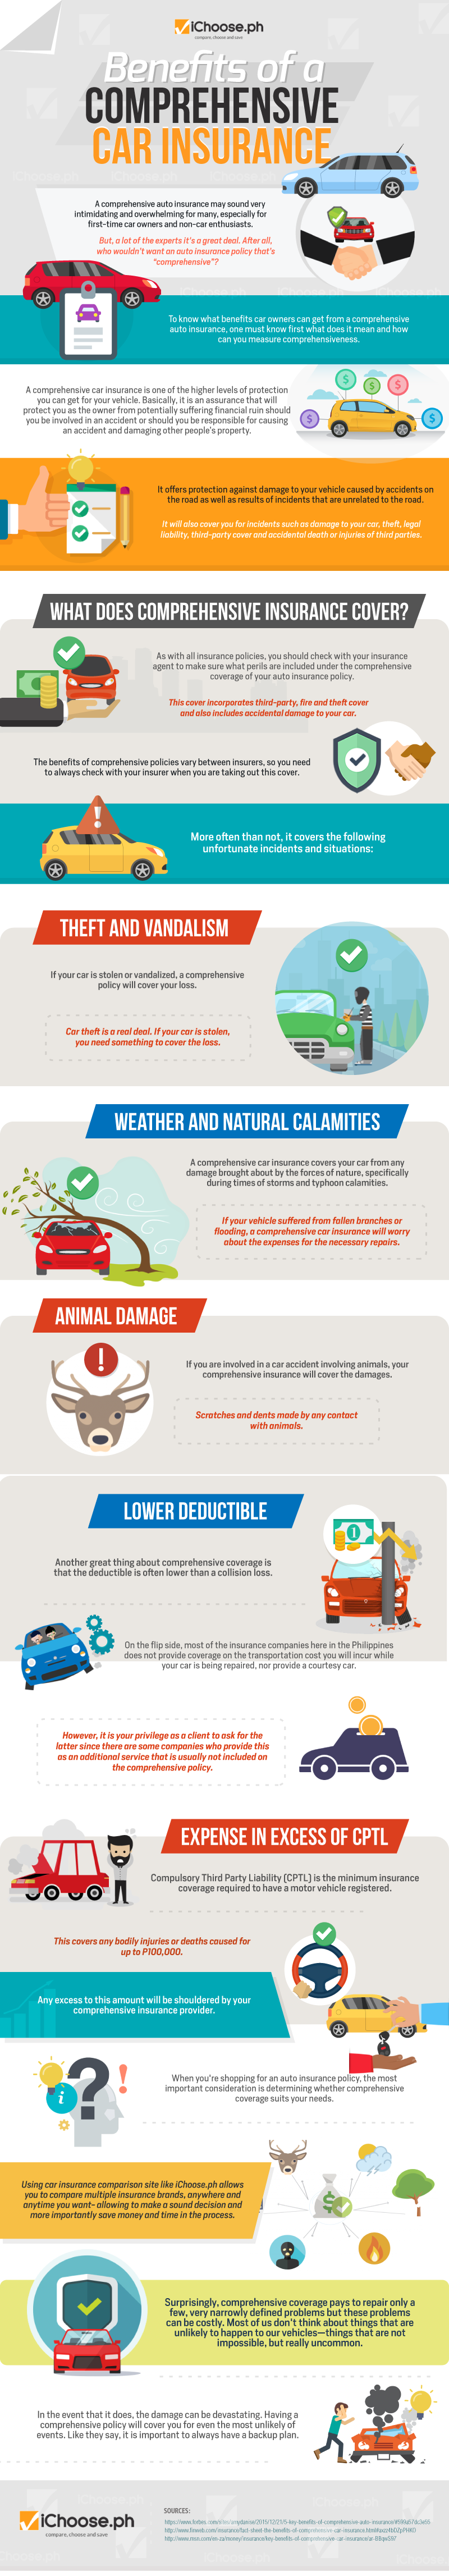 Benefits of prehensive Car Insurance Infographic